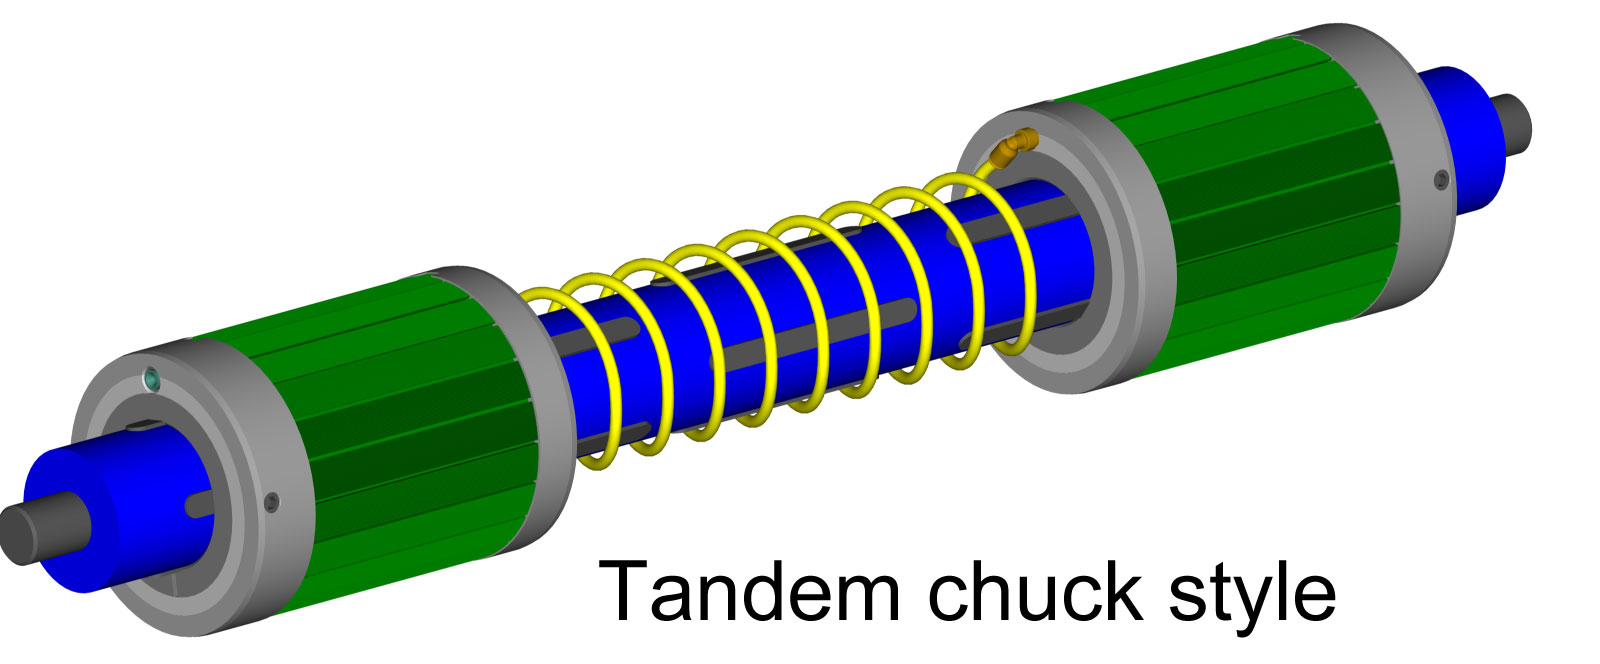 Tandem Chuck style core adapters